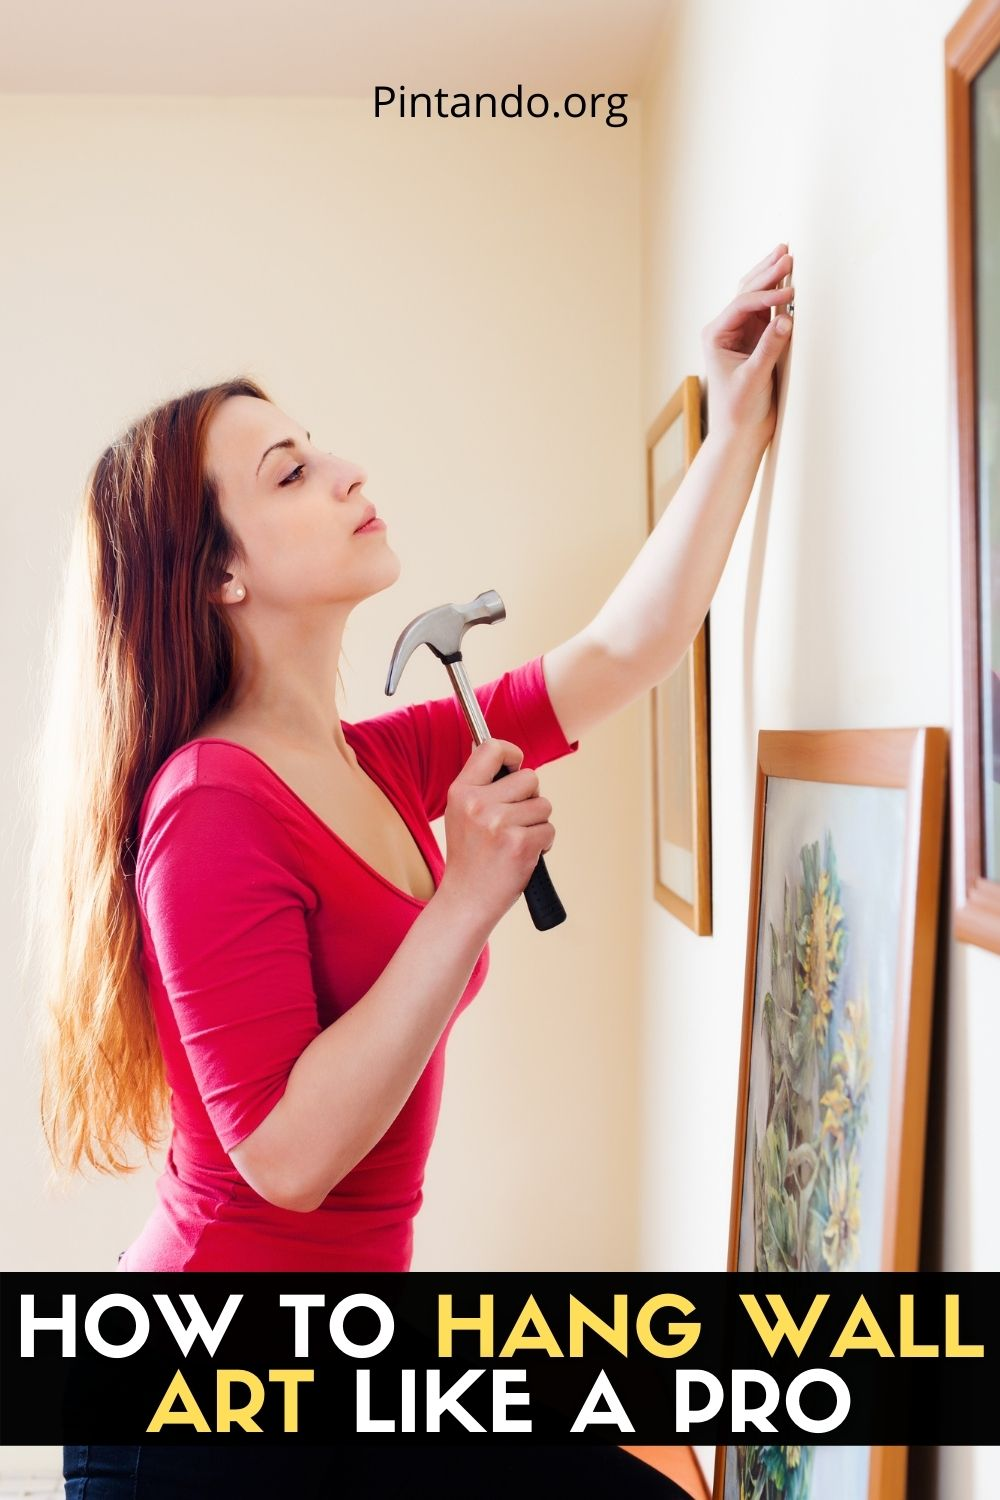 HOW TO HANG WALL ART LIKE A PRO